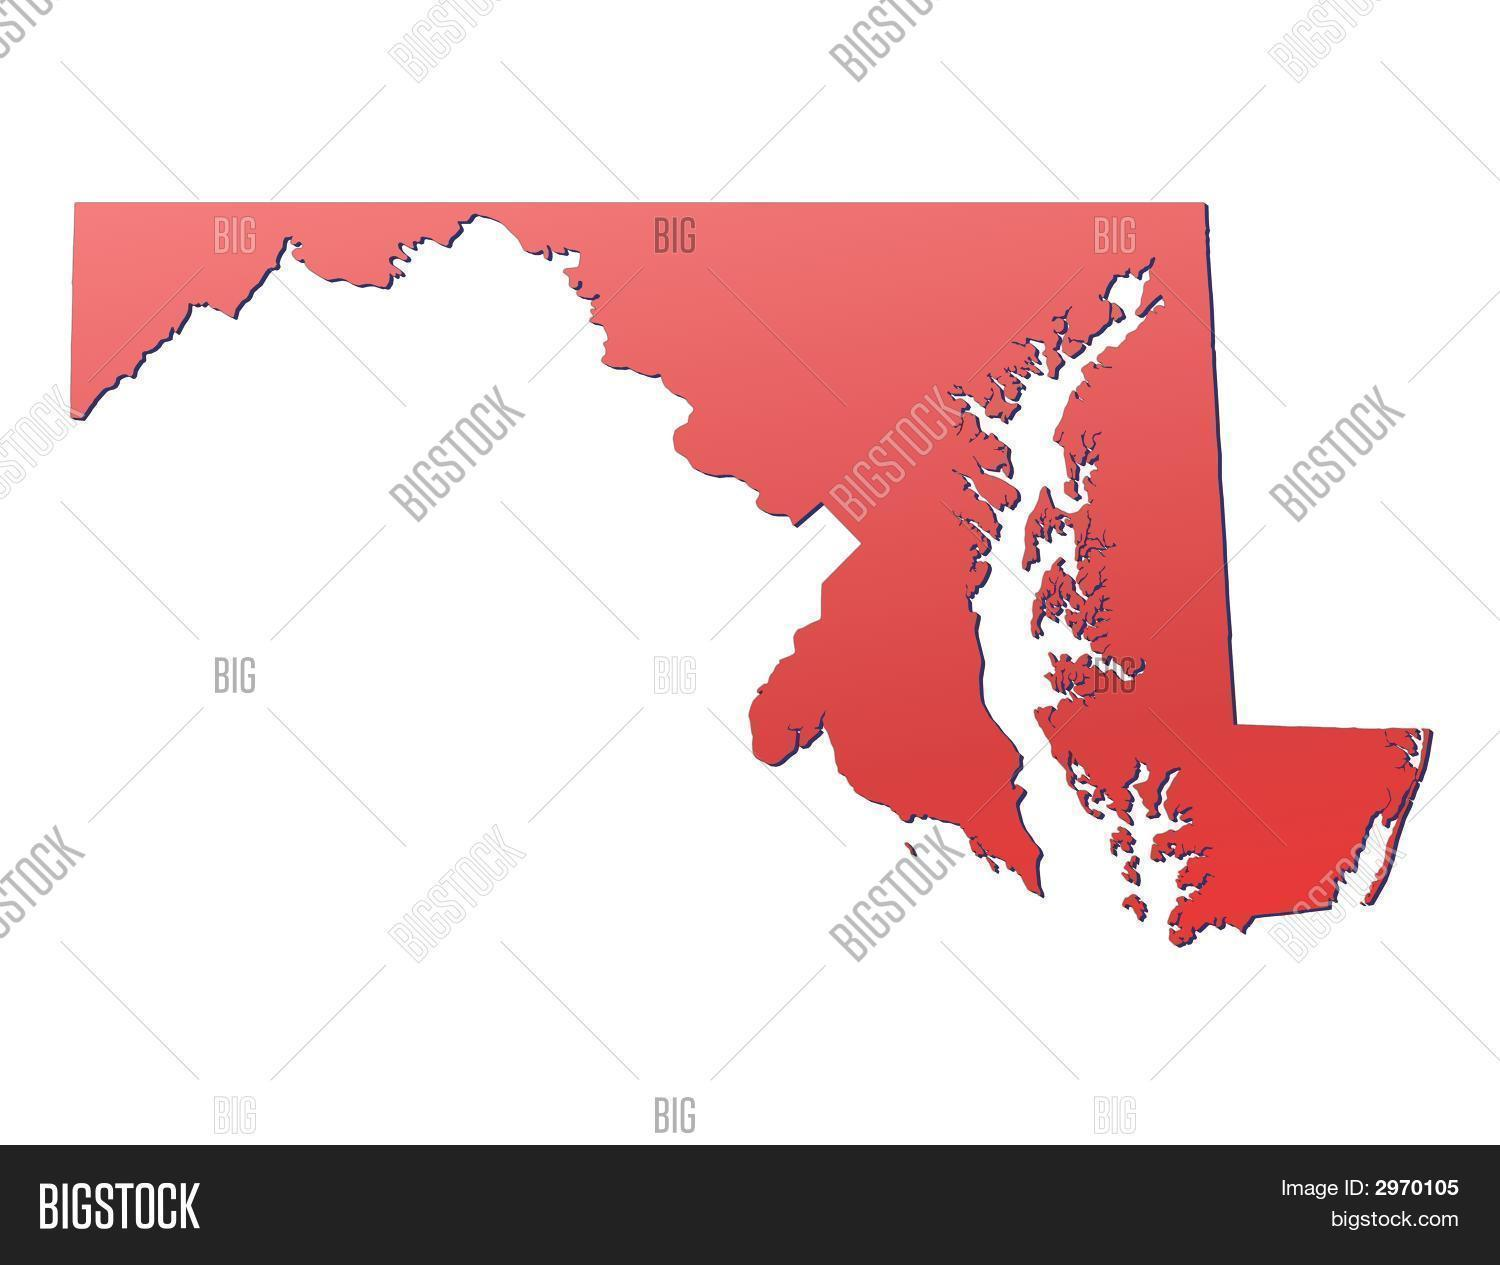 Maryland On Usa Map.Maryland Usa Map Image Photo Free Trial Bigstock